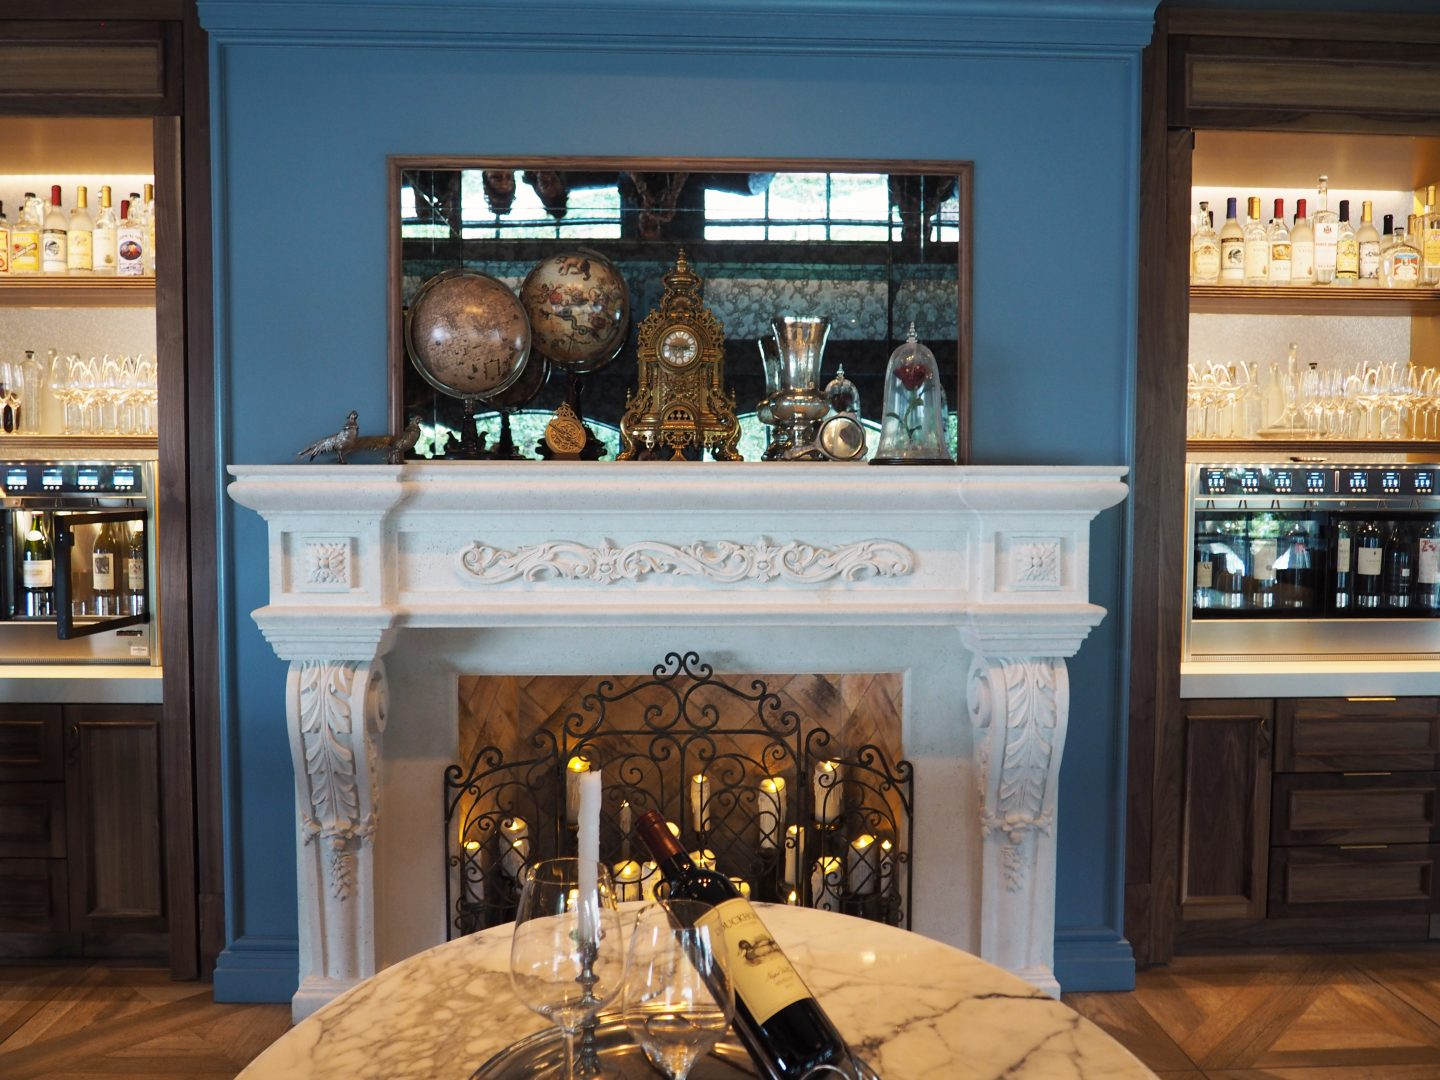 disney's beauty and the beast lounge at the grand floridian enchanted rose